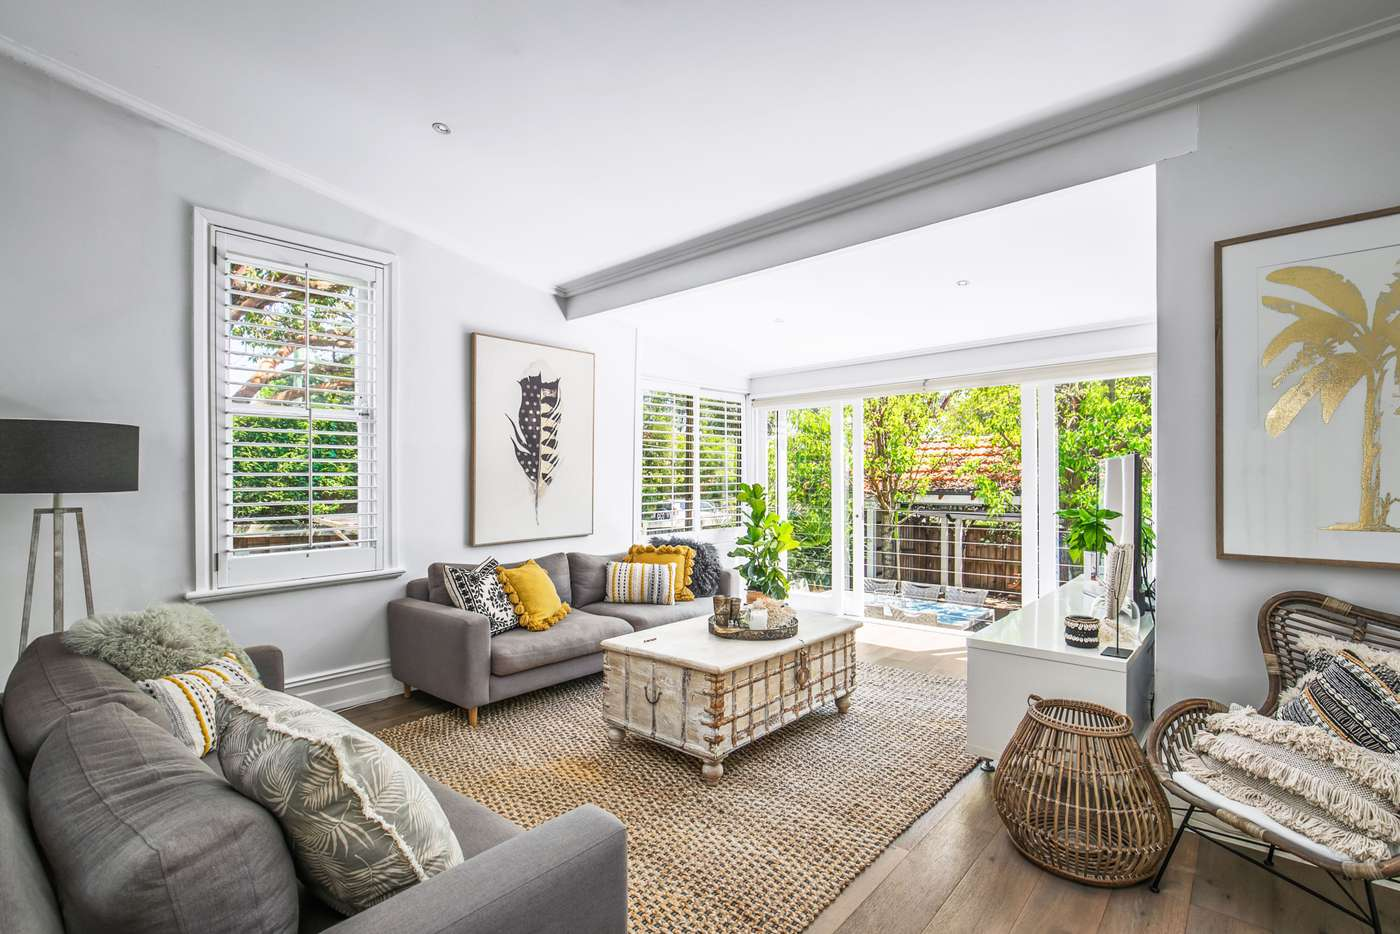 Fifth view of Homely house listing, 19 Earl Street, Mosman NSW 2088